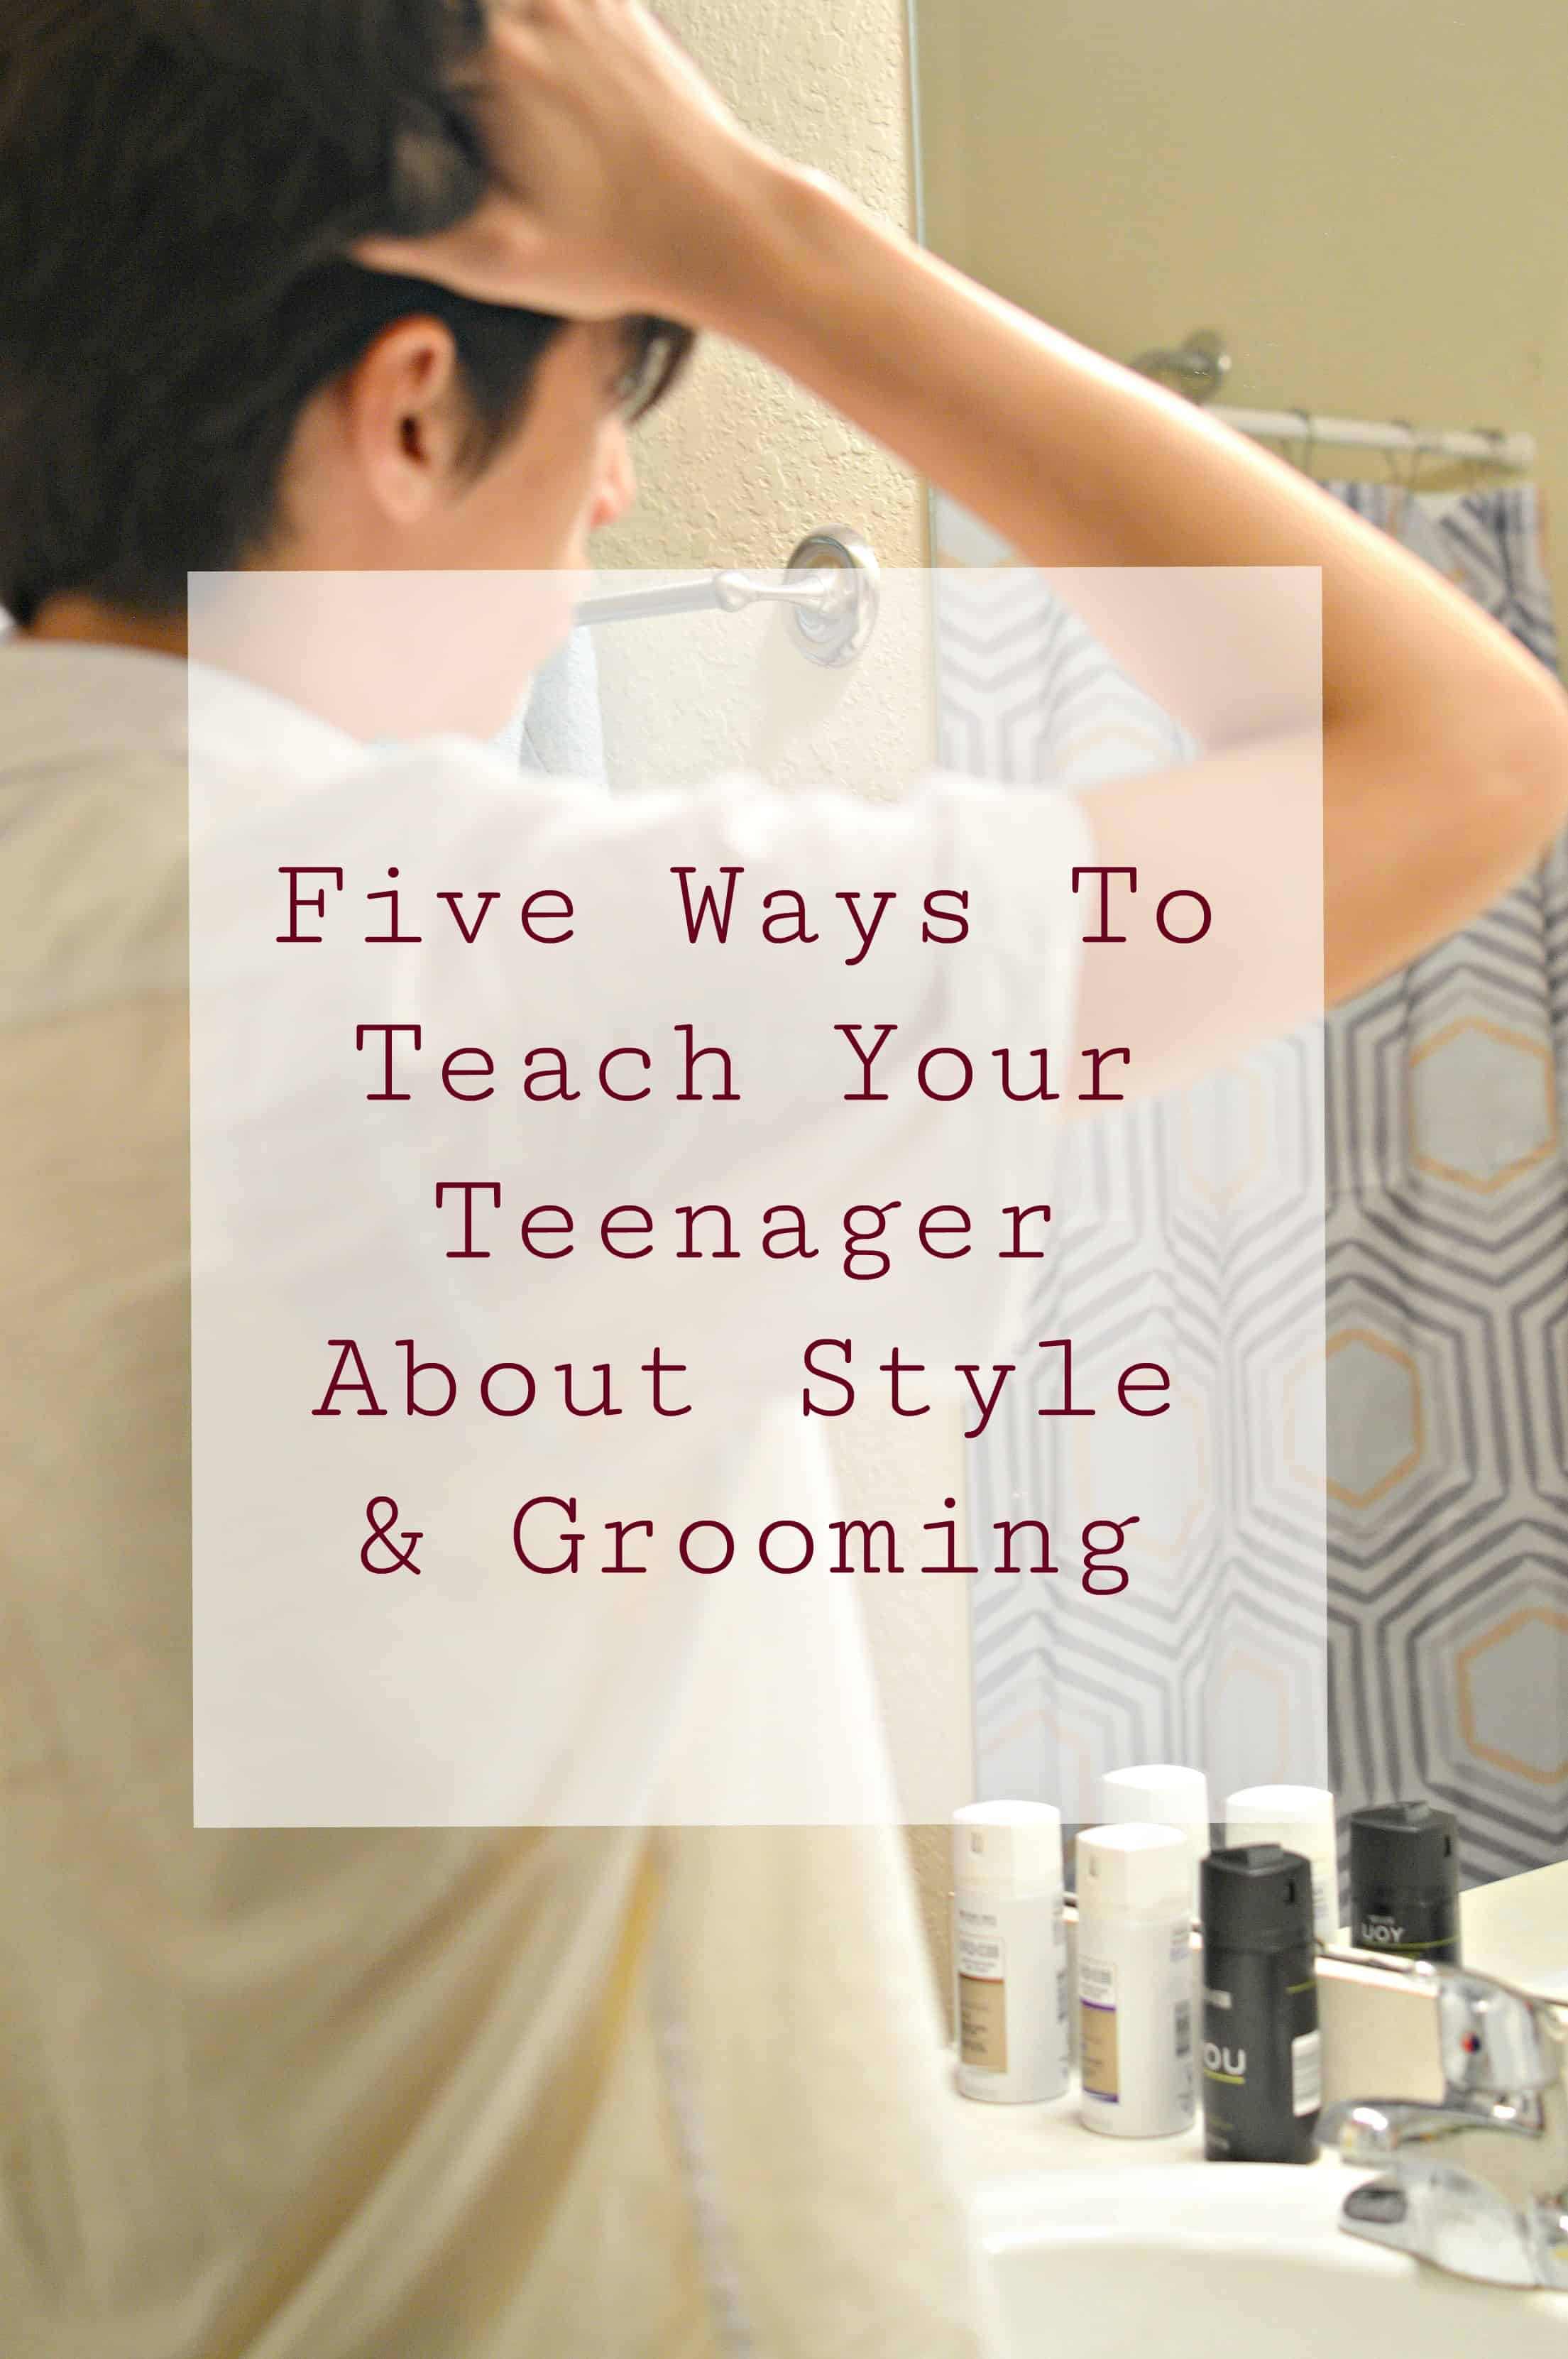 Five Easy Ways to Teach Your Teenager About Style and Grooming